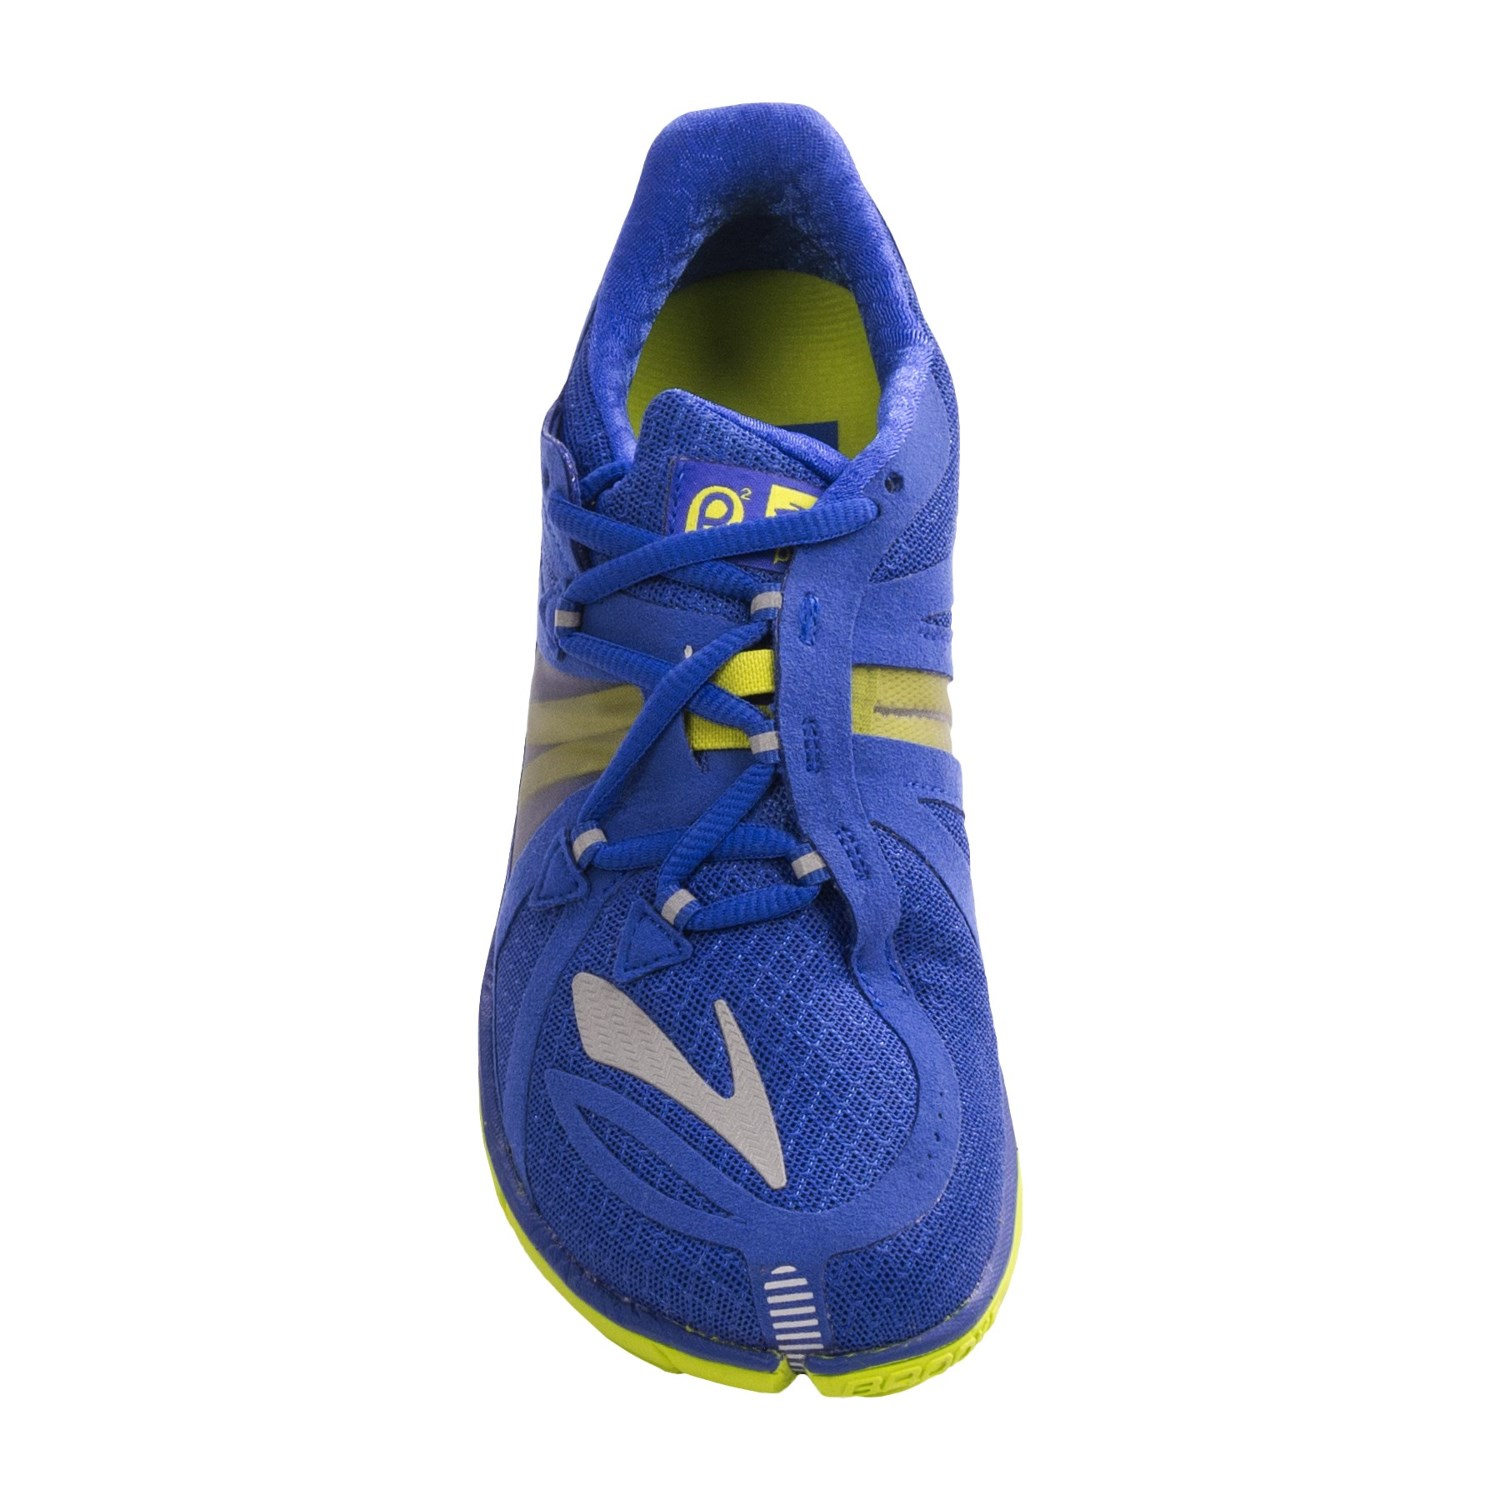 minimalist running lit review Inov8 f-lite 230 running shoe review  is inov8 f-lite 230 the best running shoe for me the inov8 f-lite is  if you are looking for a minimalist shoe.